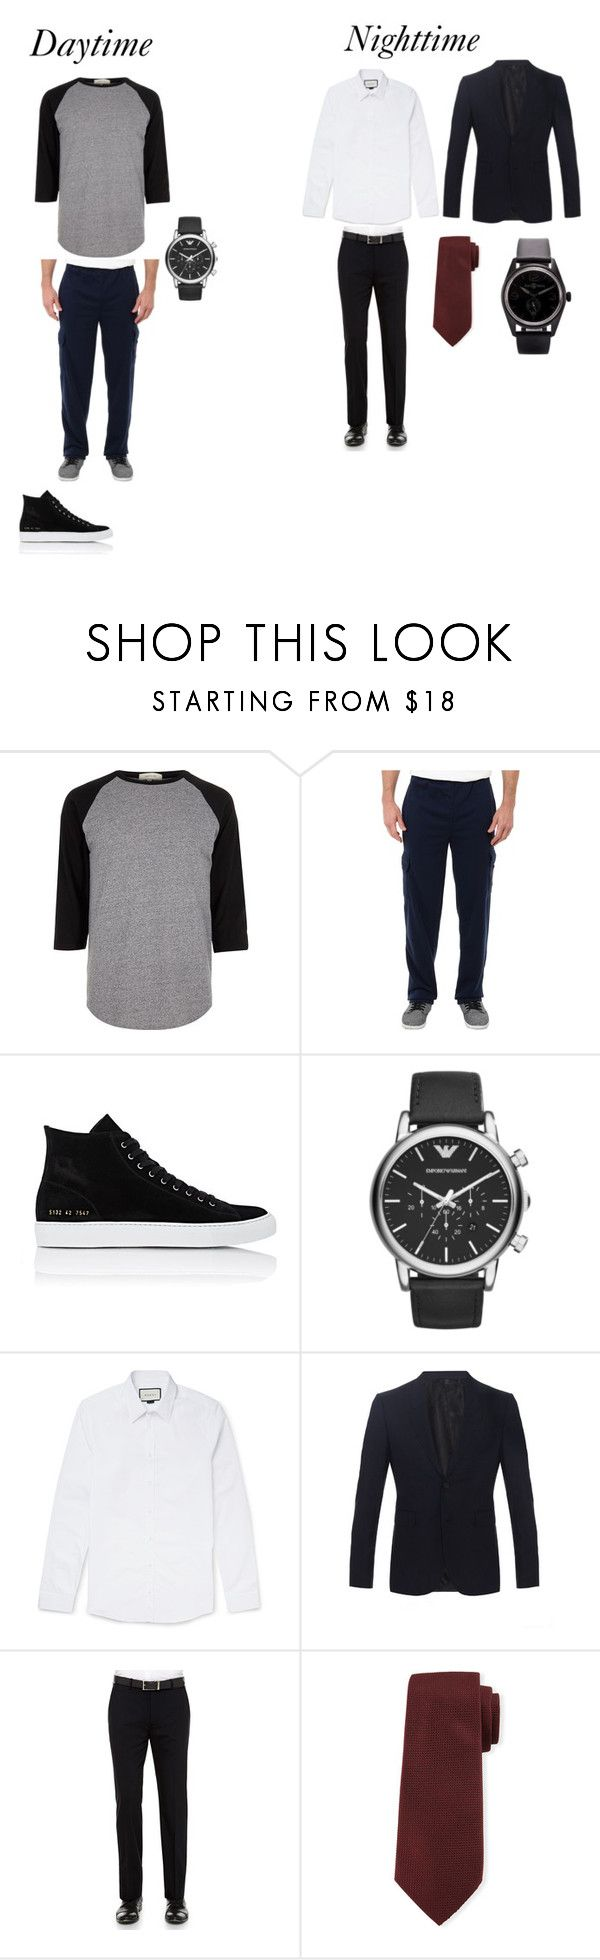 """""""Playtime Oliver"""" by sara-scott-i on Polyvore featuring River Island, U.S. Polo Assn., Common Projects, Emporio Armani, Gucci, Burberry, Theory, Davidoff, Bell & Ross and men's fashion"""